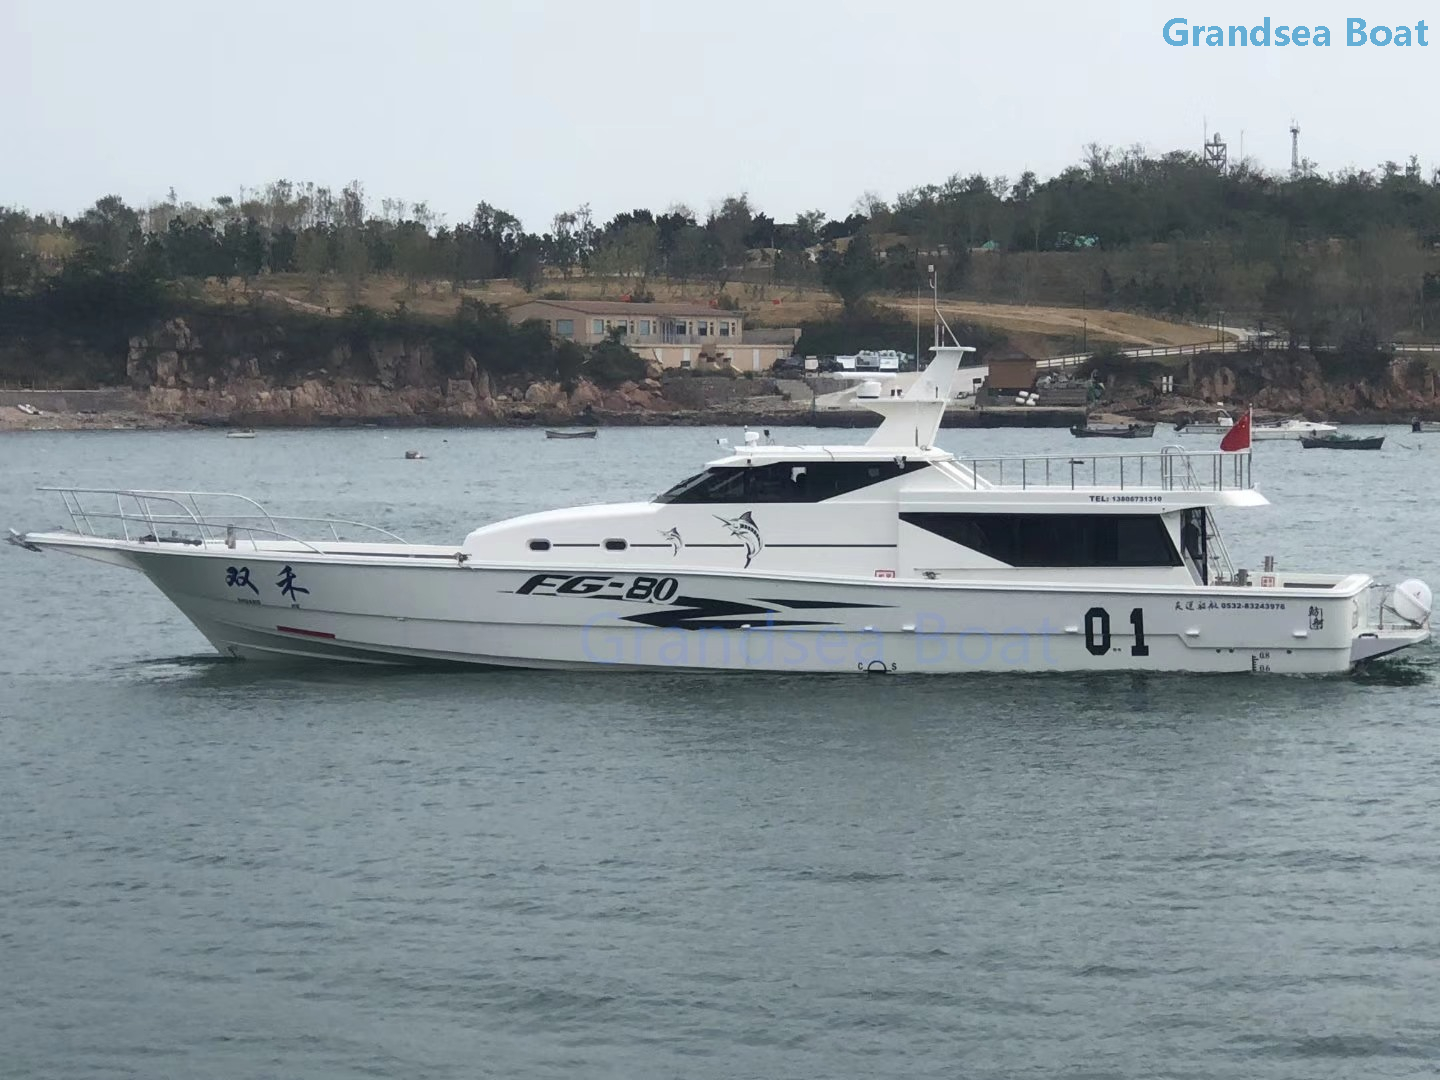 Grandsea 77ft Fiberglass Deep Sea Fishing Trips Boat for Sale